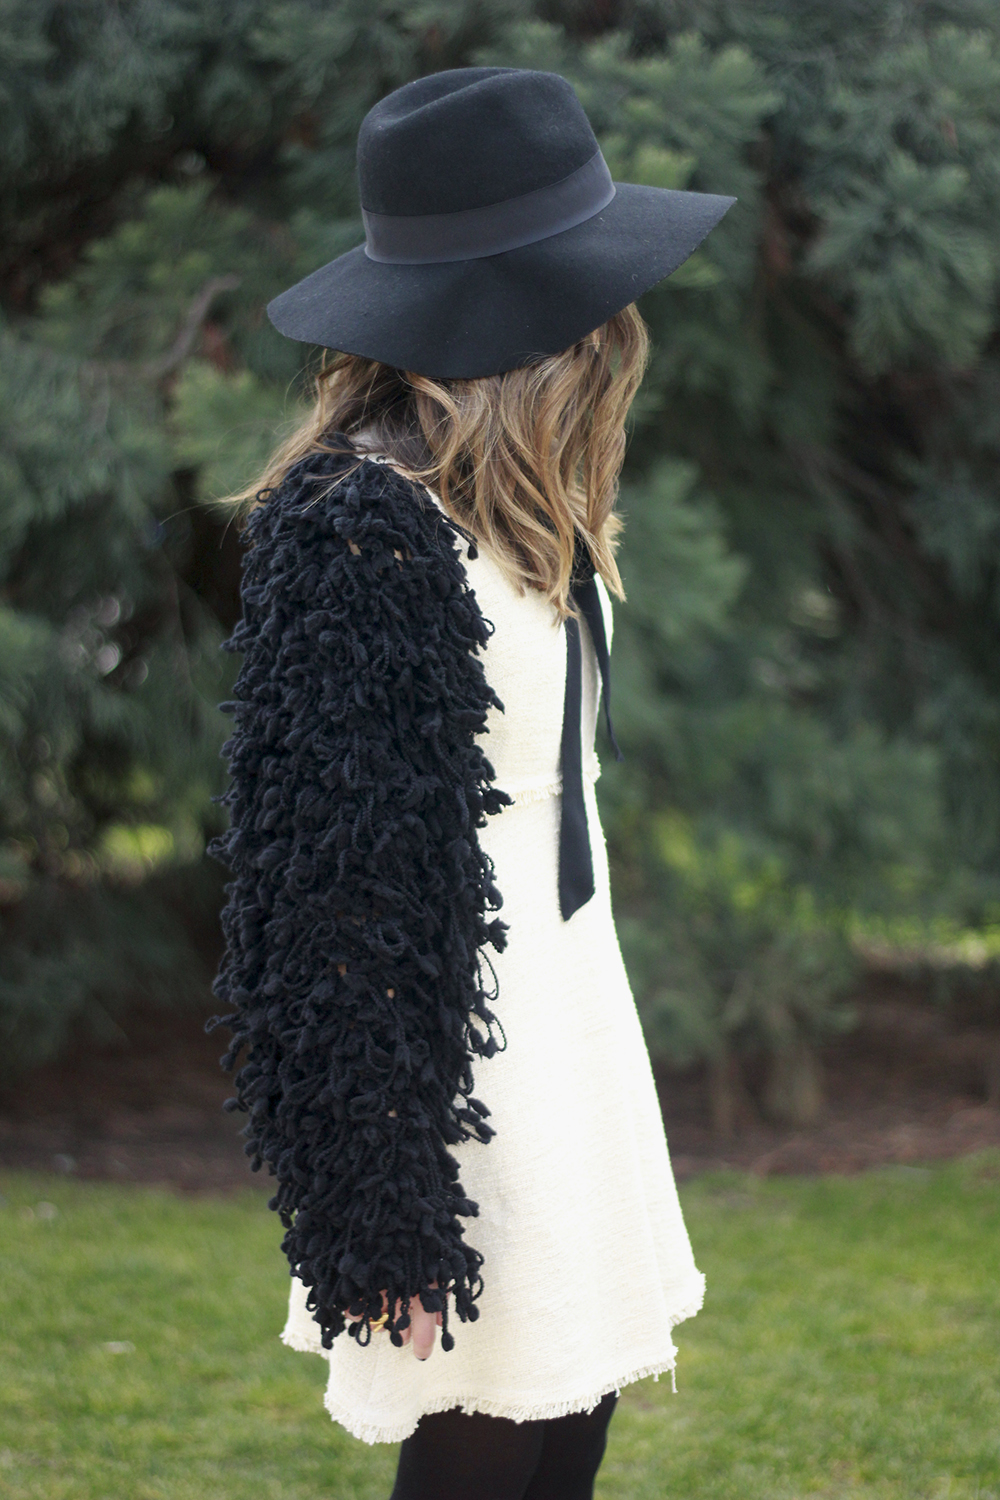 White tweed dress with bow black jacket hat outfit04